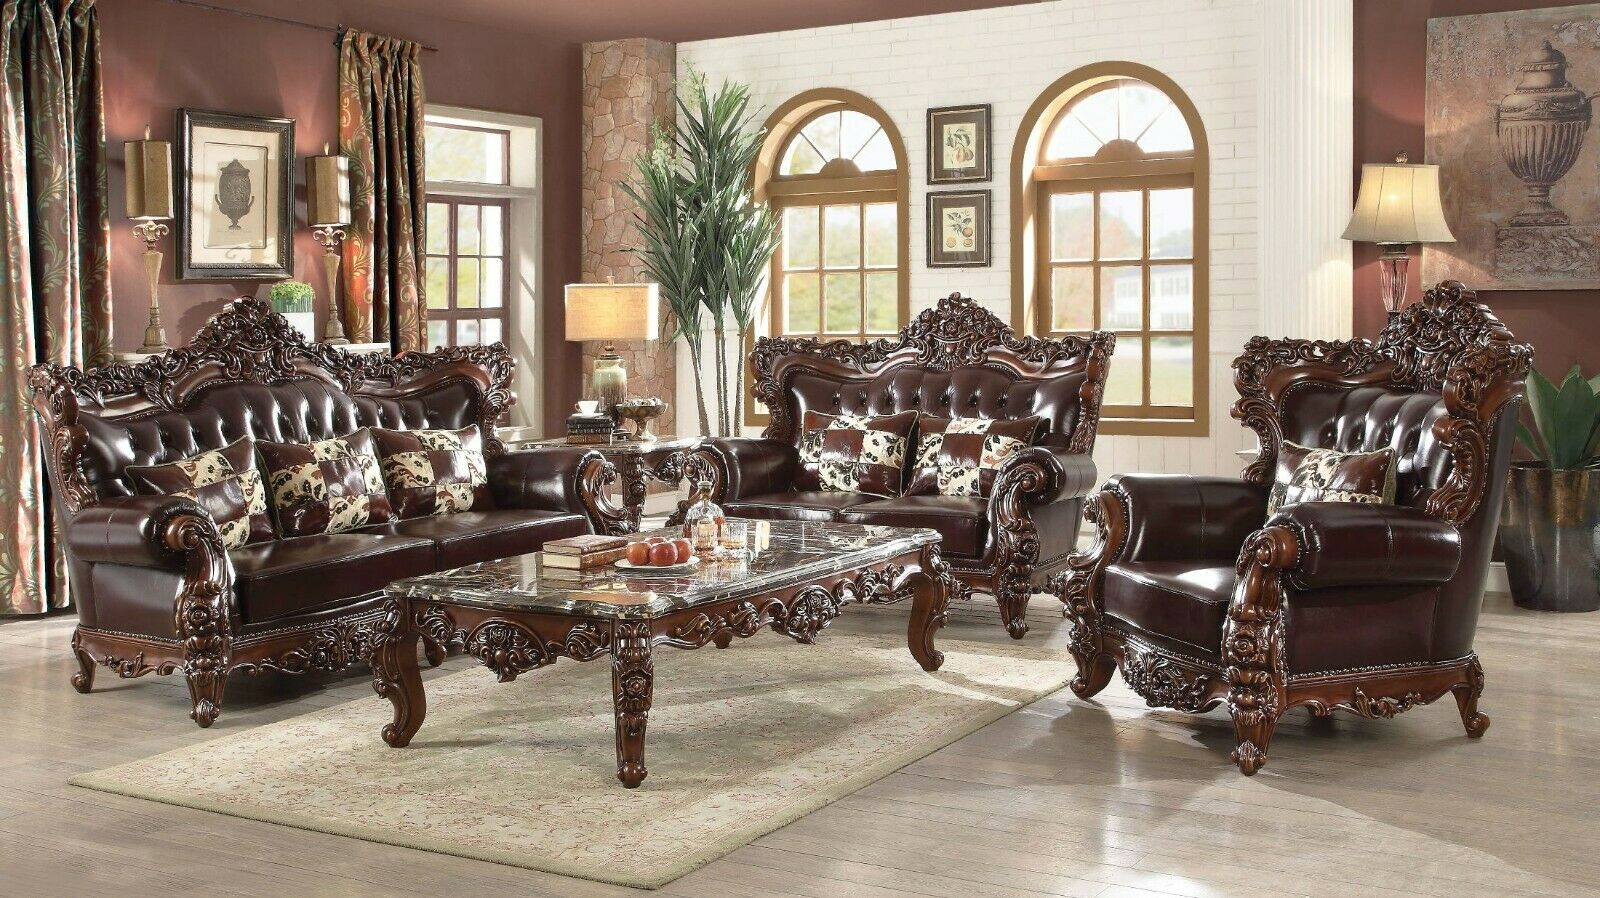 Barcelona Dark Brown Tufted Traditional 2pc Leather Sofa Set With Winged  Back